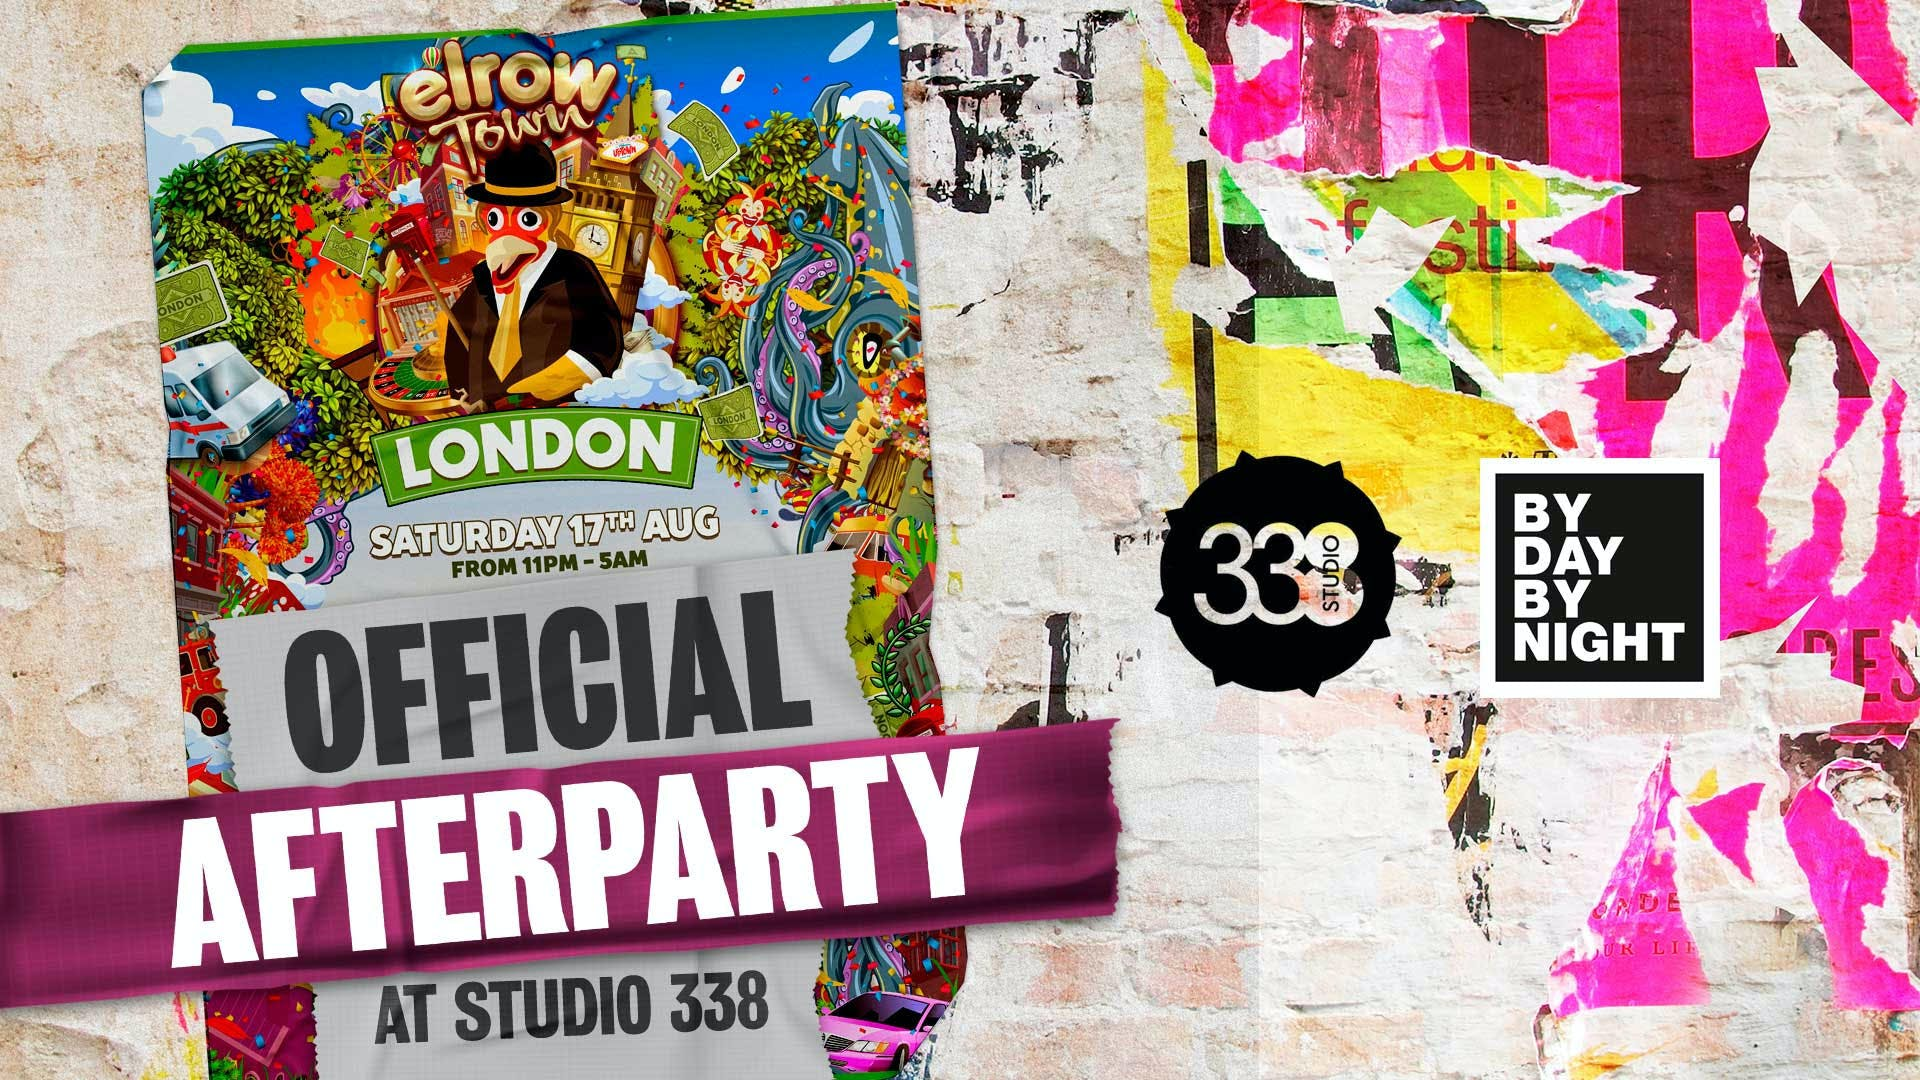 Byday Bynight partner exclusively with Elrow for Elrow Town London afterparties